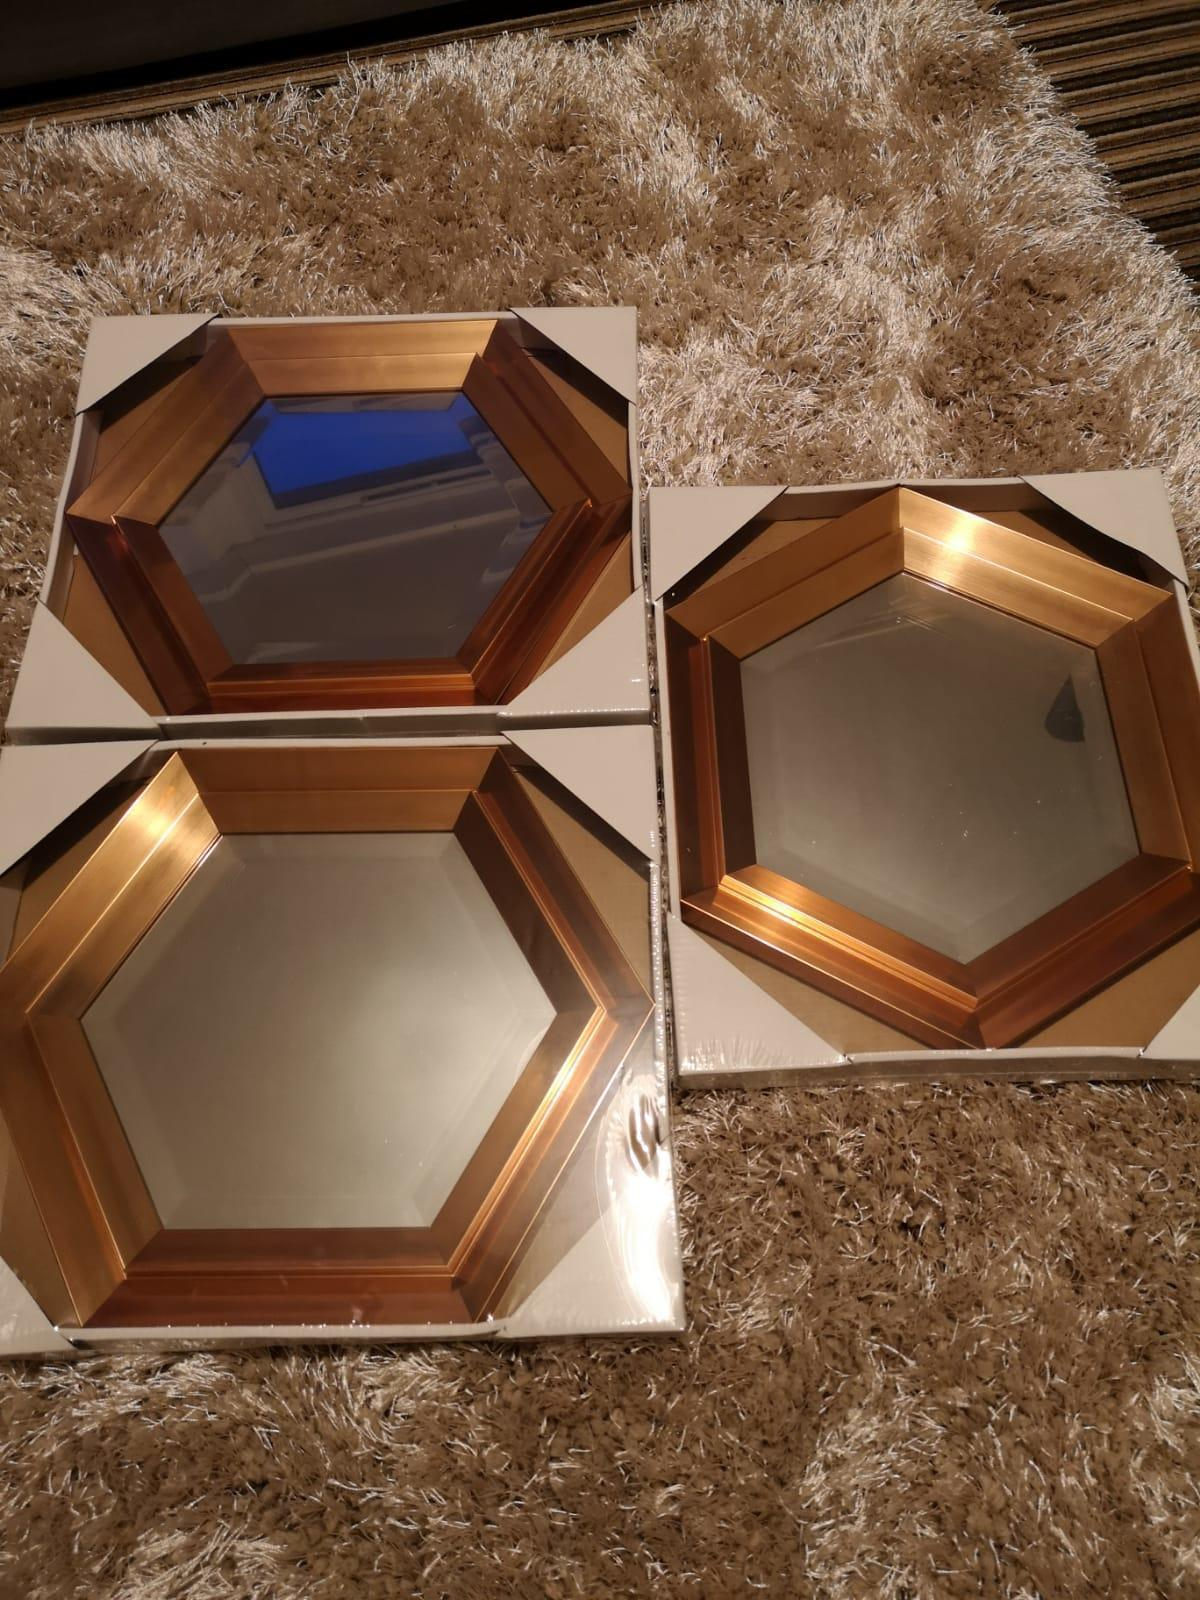 Set of 3 hexagonal copper Mirrors £40